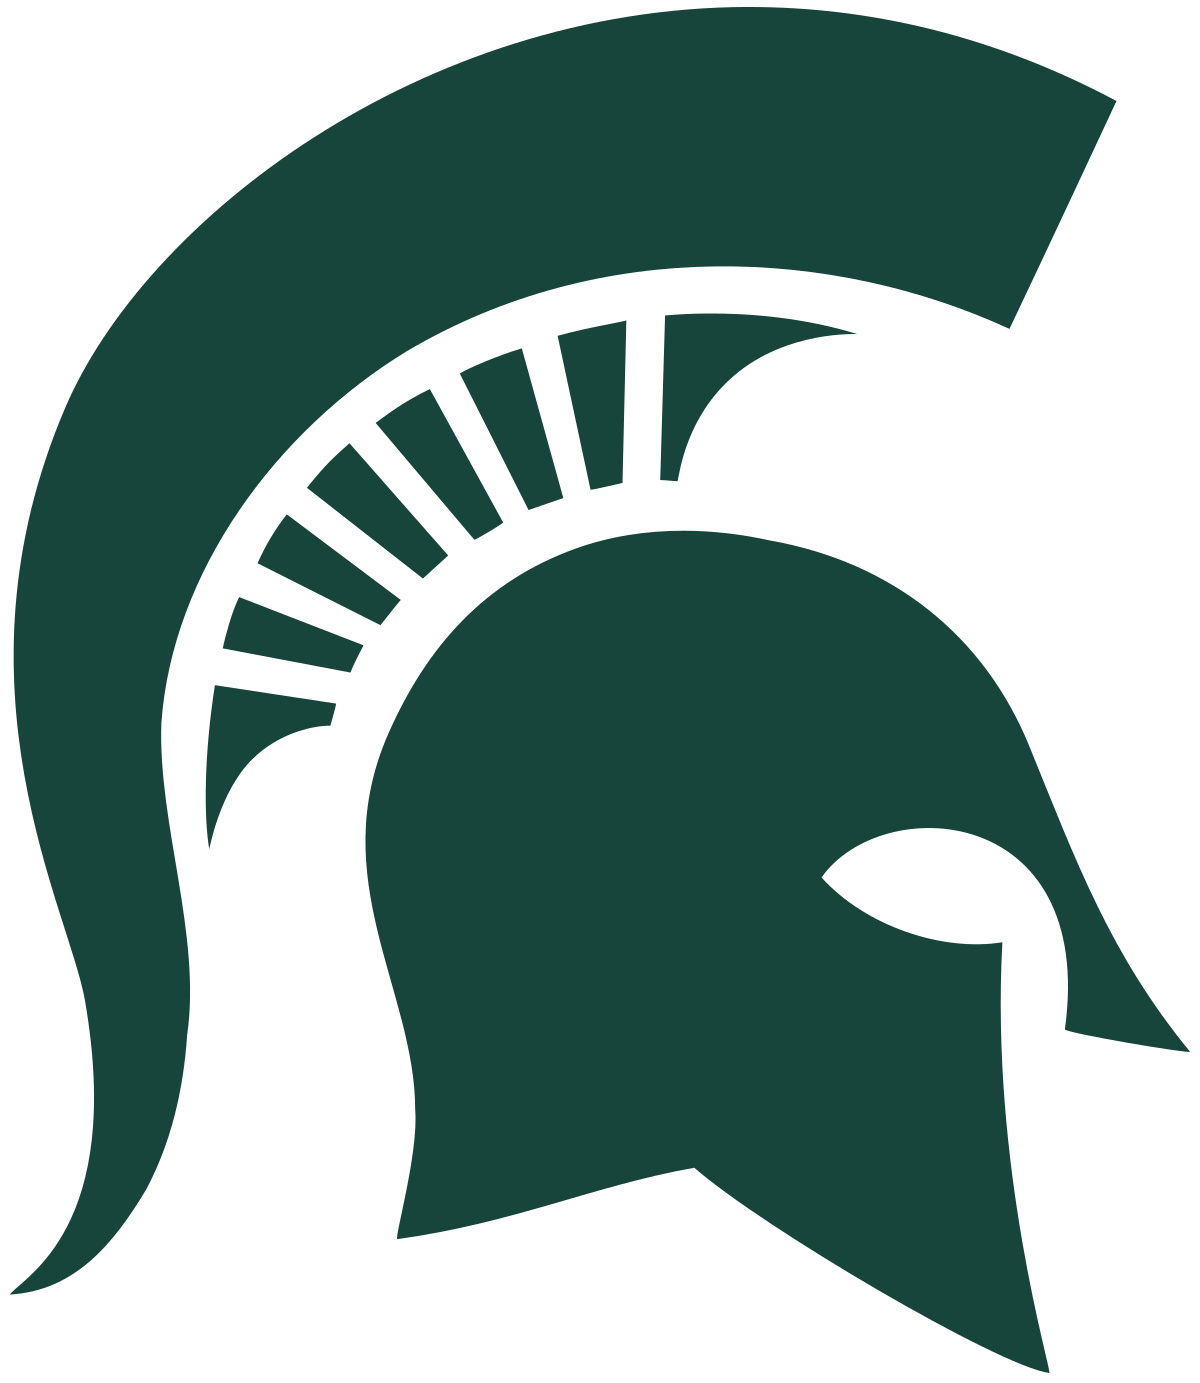 Michigan State University Volleyball